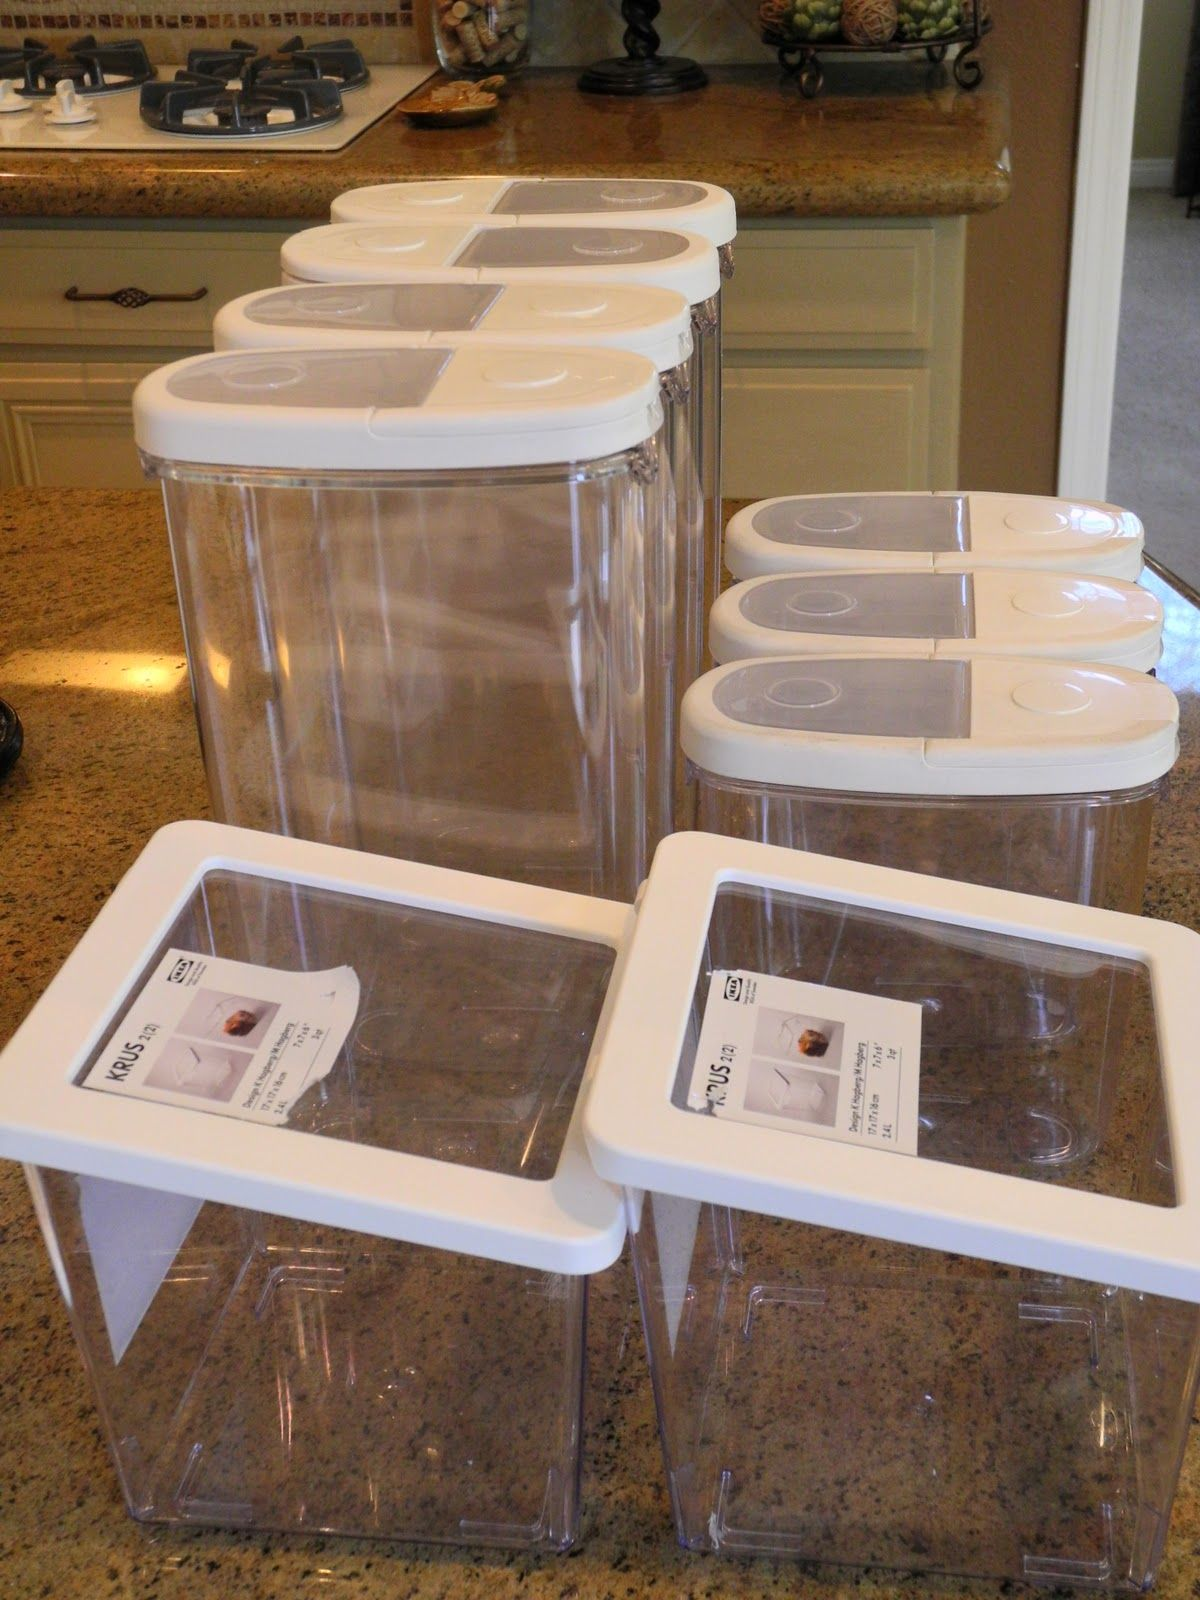 storage containers kitchen bins for organizing pantry bpa free ikea containers for 2551